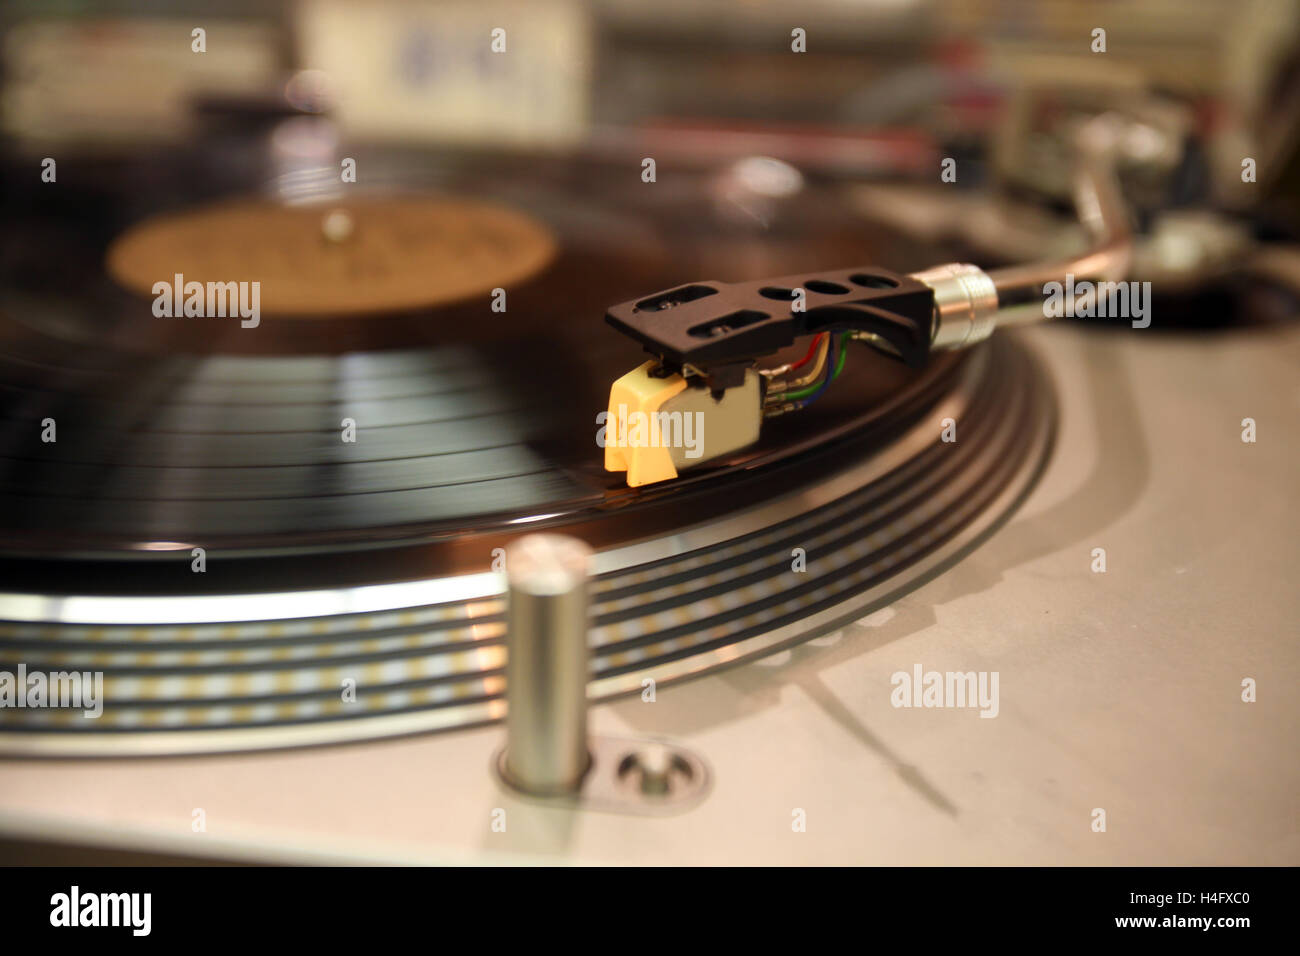 Turntable in action with focus on the cartridge - Stock Image